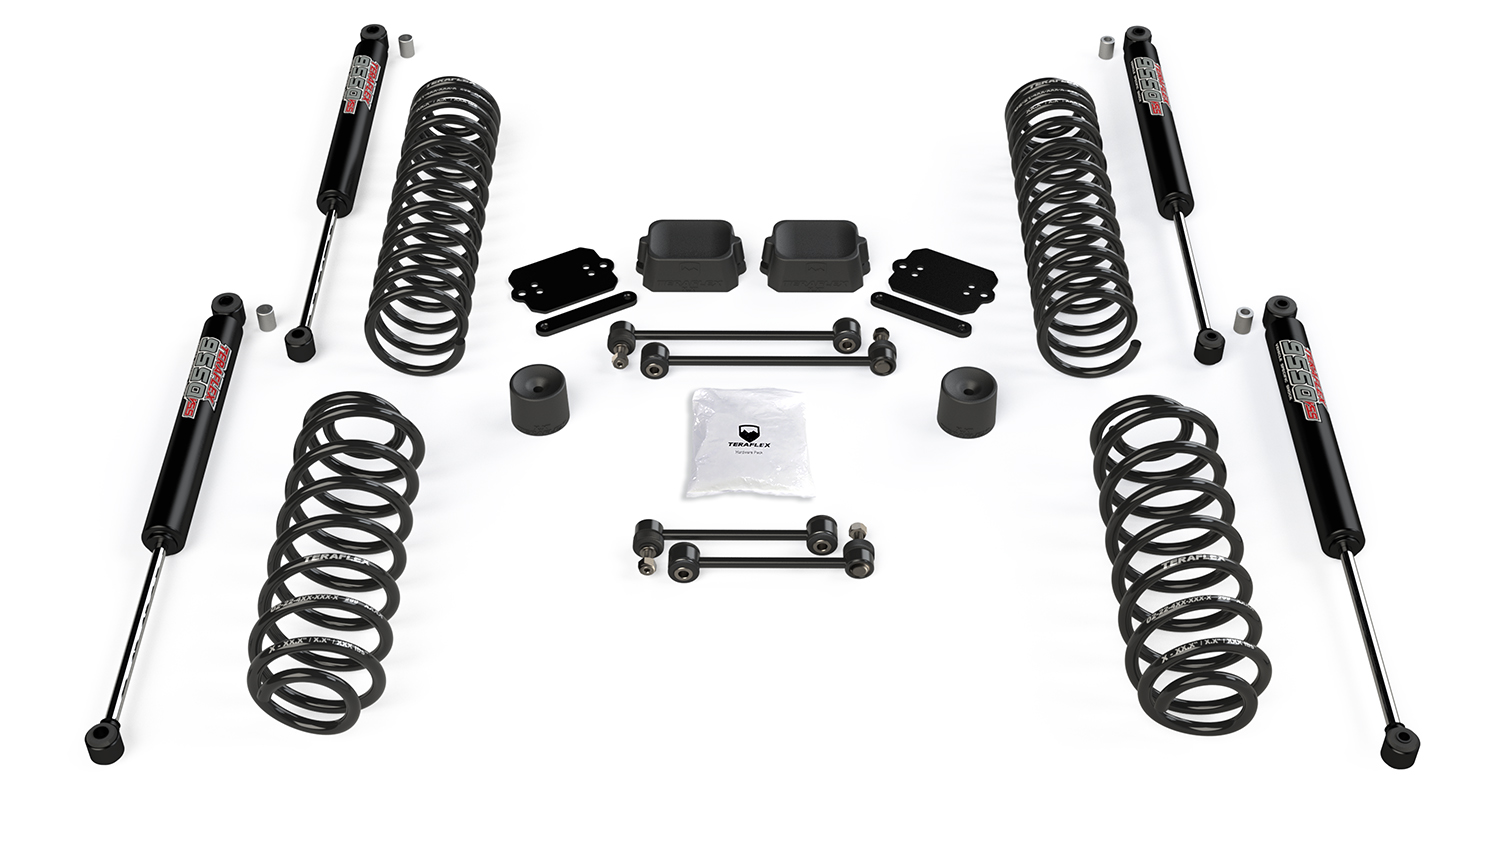 Teraflex 2.5in Coil Spring Base Lift Kit w/ 9550 VSS Twin-Tube Shocks - JL 4Dr